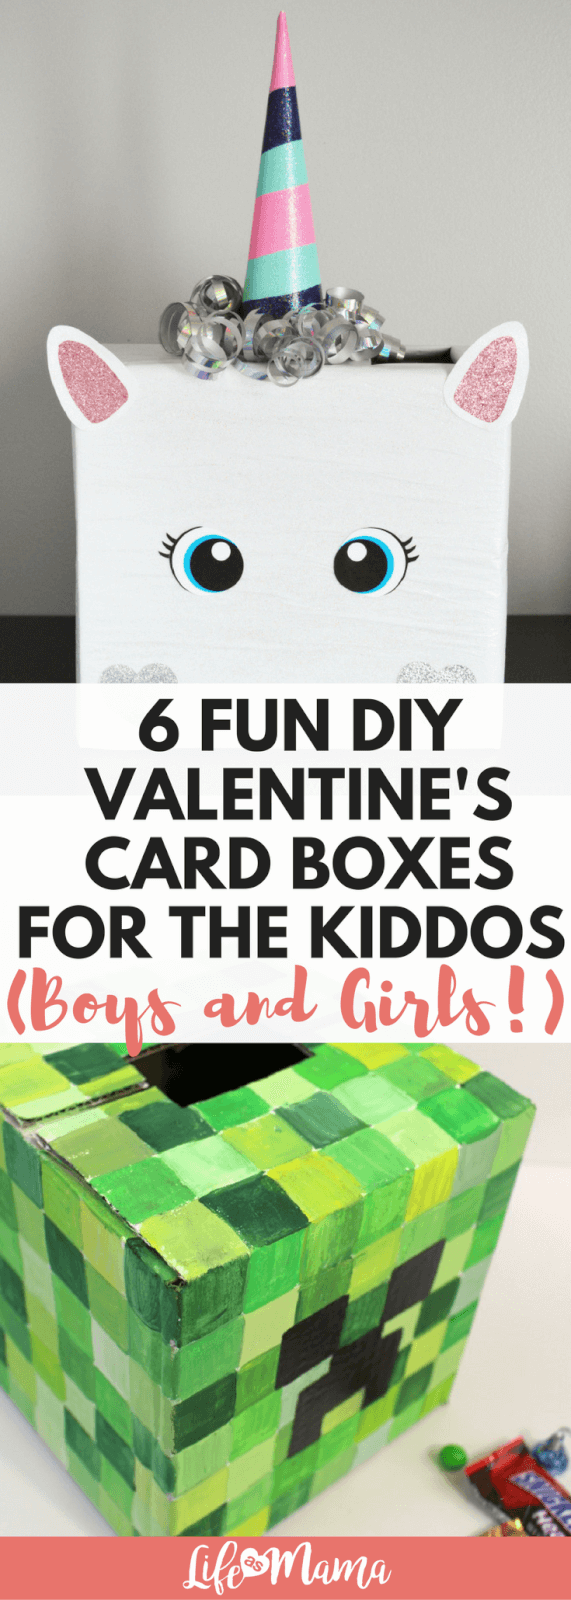 valentine's card boxes